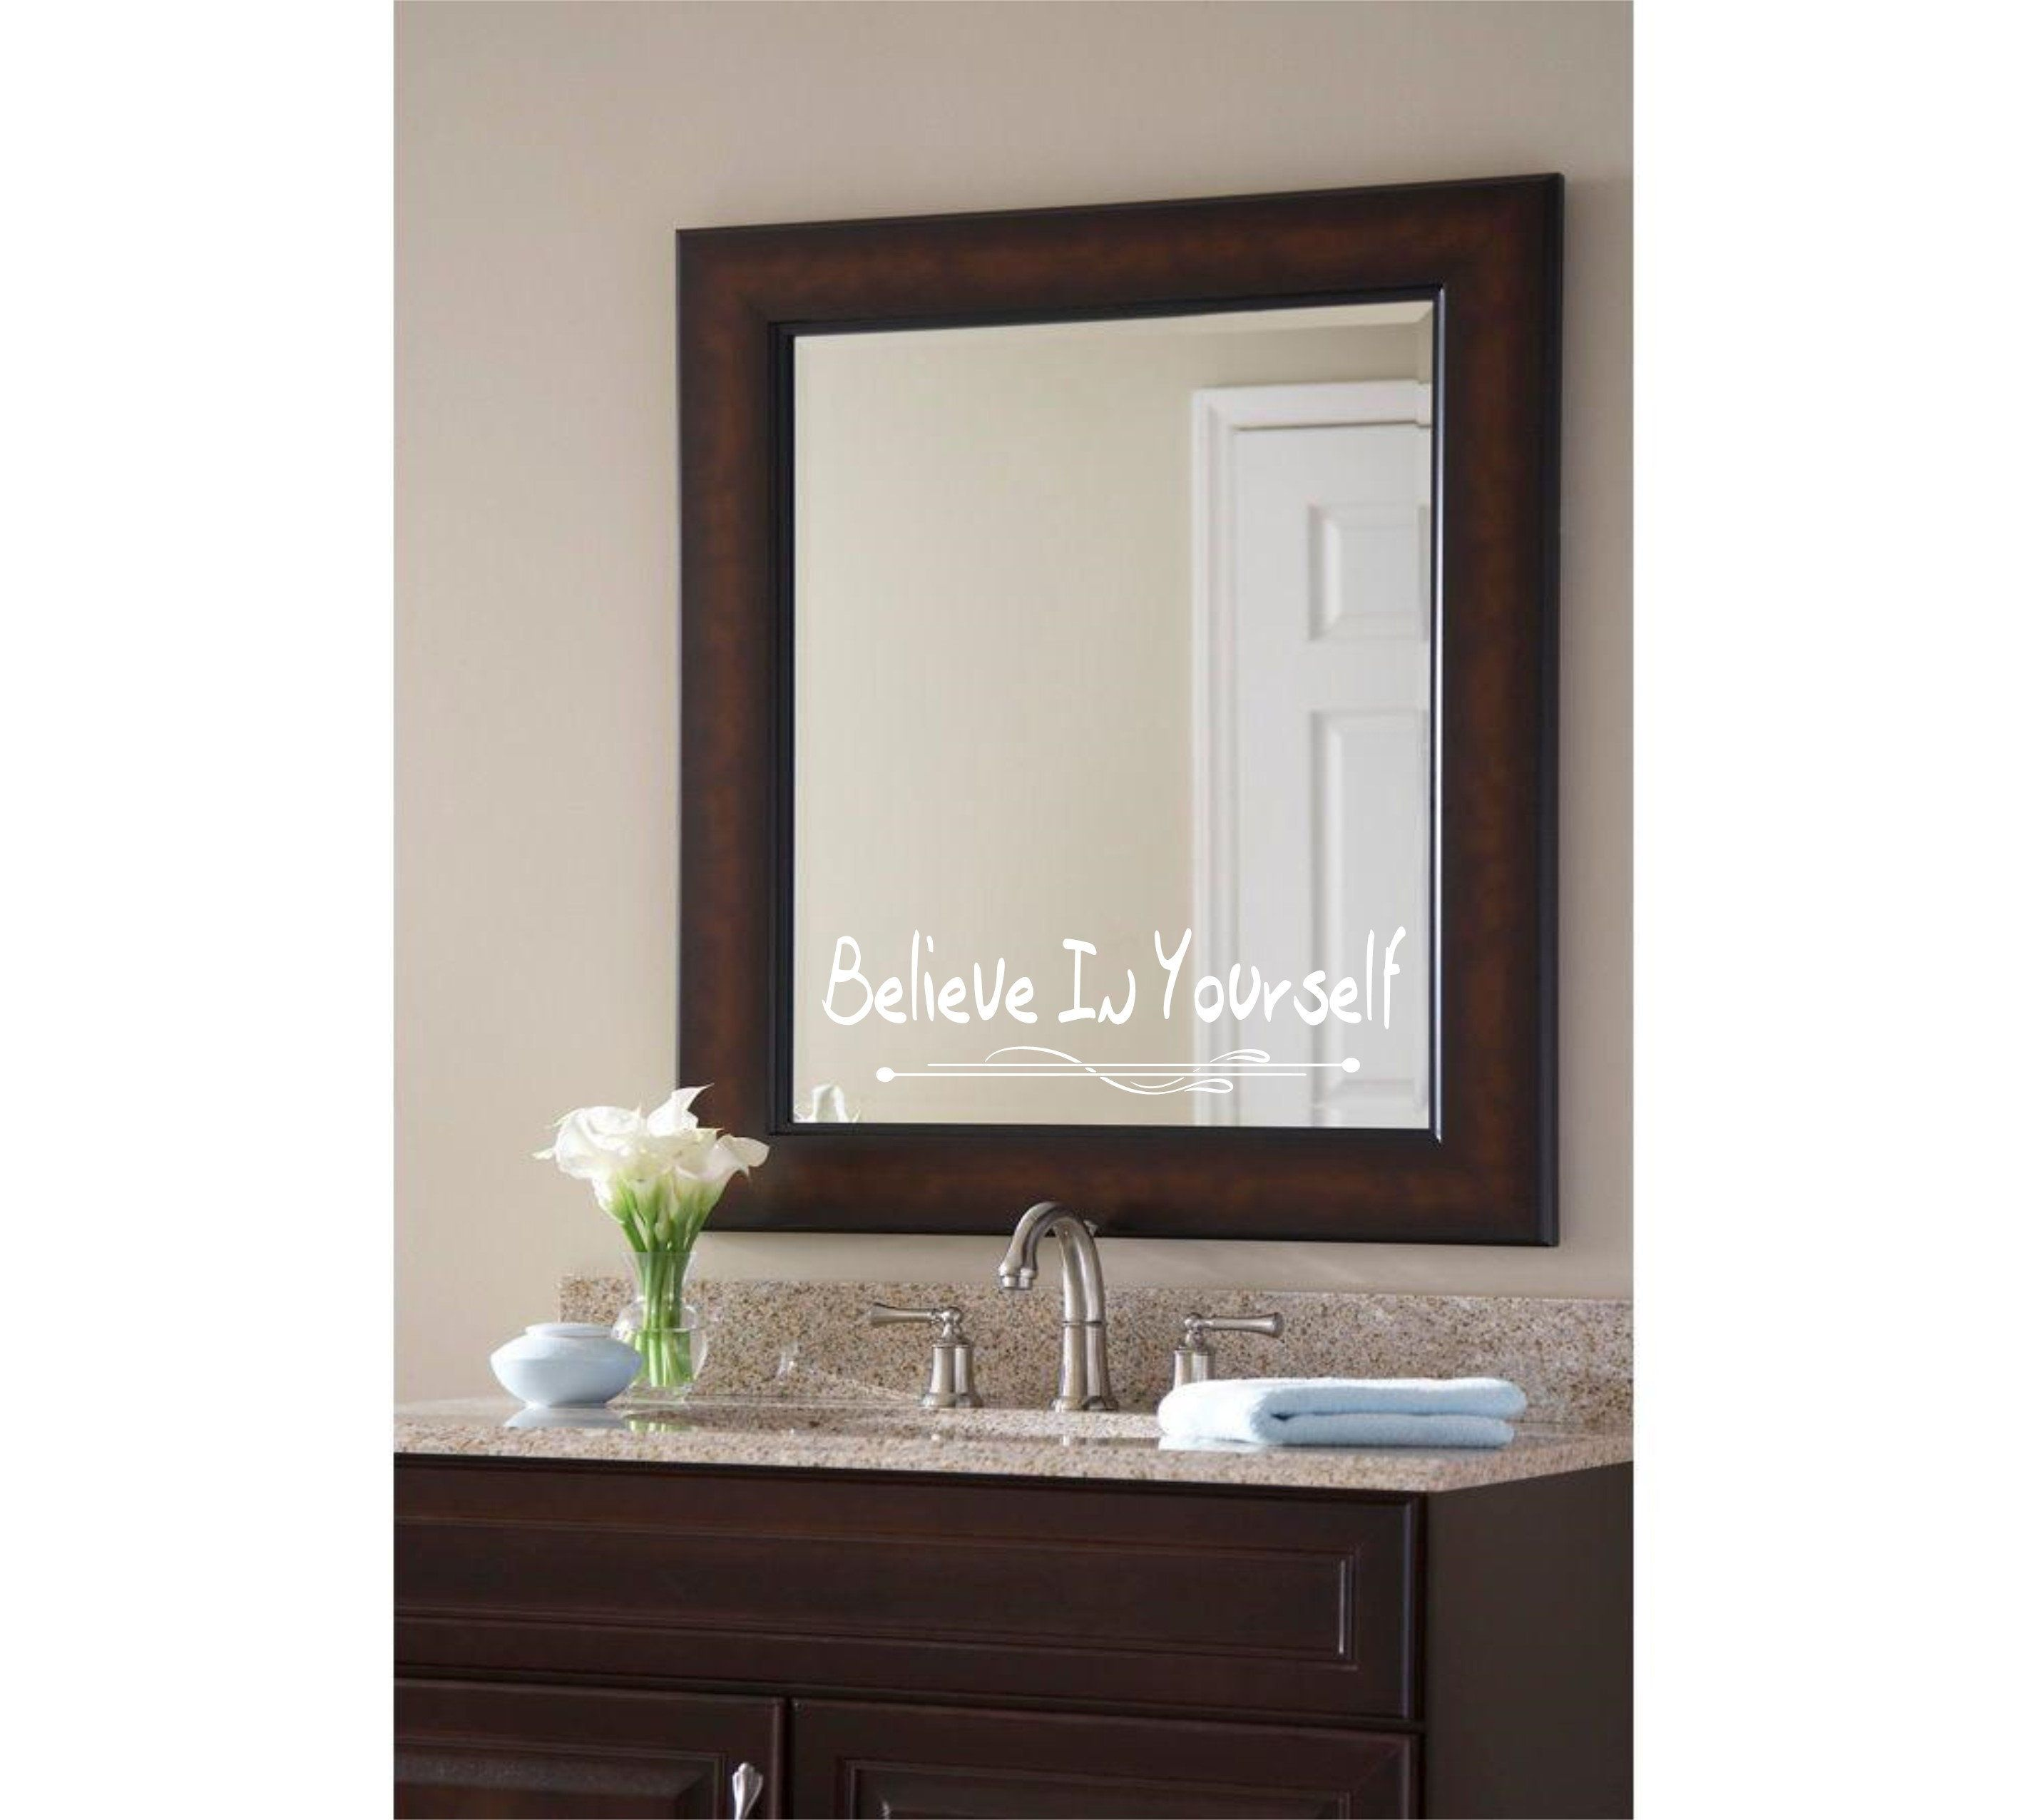 Inspiration Qoutes For Bathroom Mirror By Tkgraphicsstore On Etsy